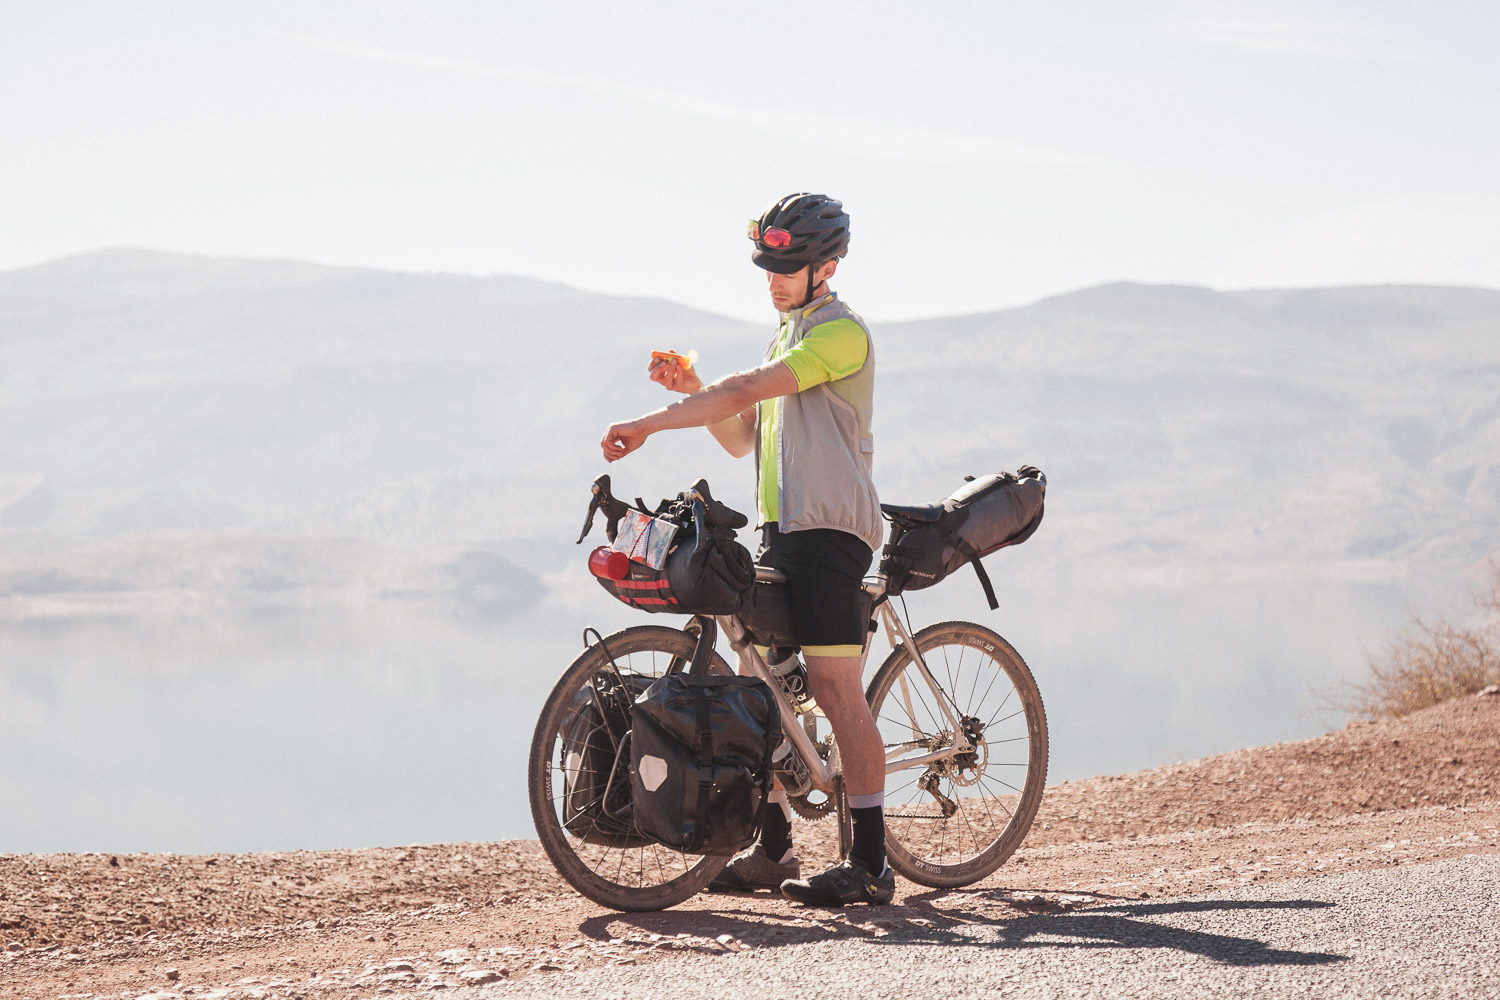 8bar bikes adventures morocco gravel 20151215 0038 bearbeitet - 8bar Adventures - Morocco - High Atlas - Part 2/2